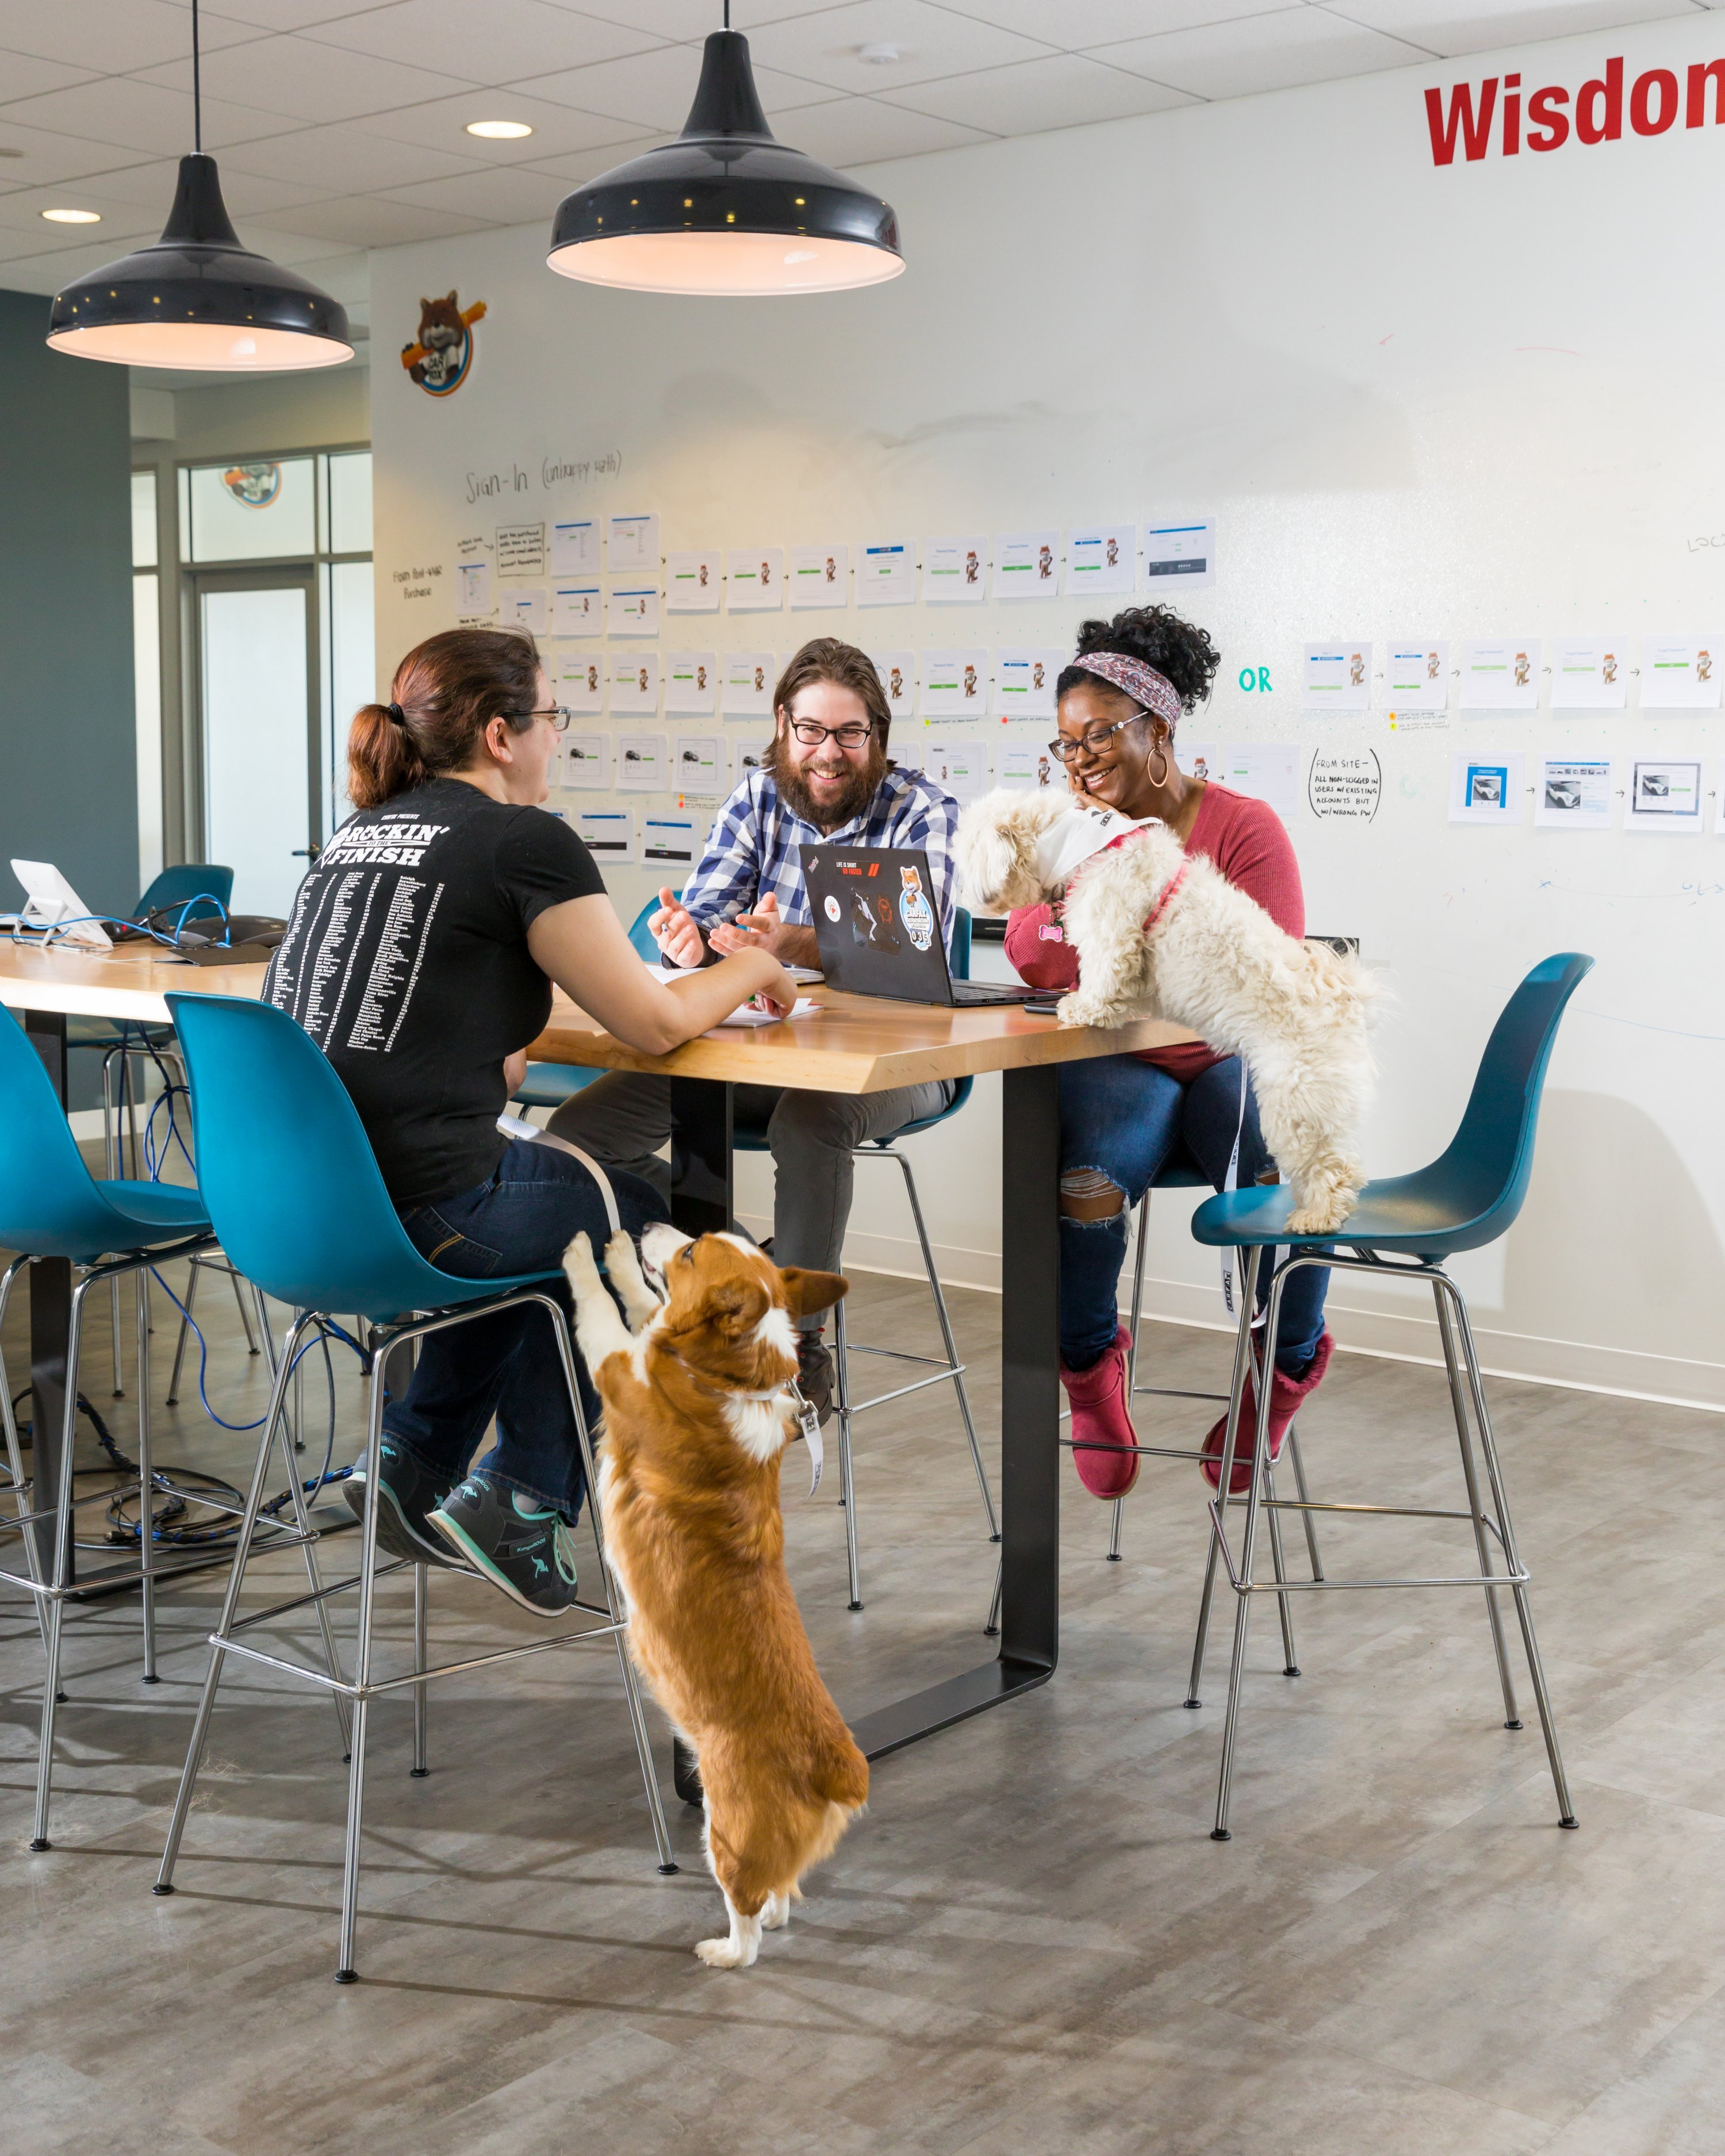 Carfax's work-hard/play-hard culture includes allowing dogs in the office. Photograph by Dan Chung.